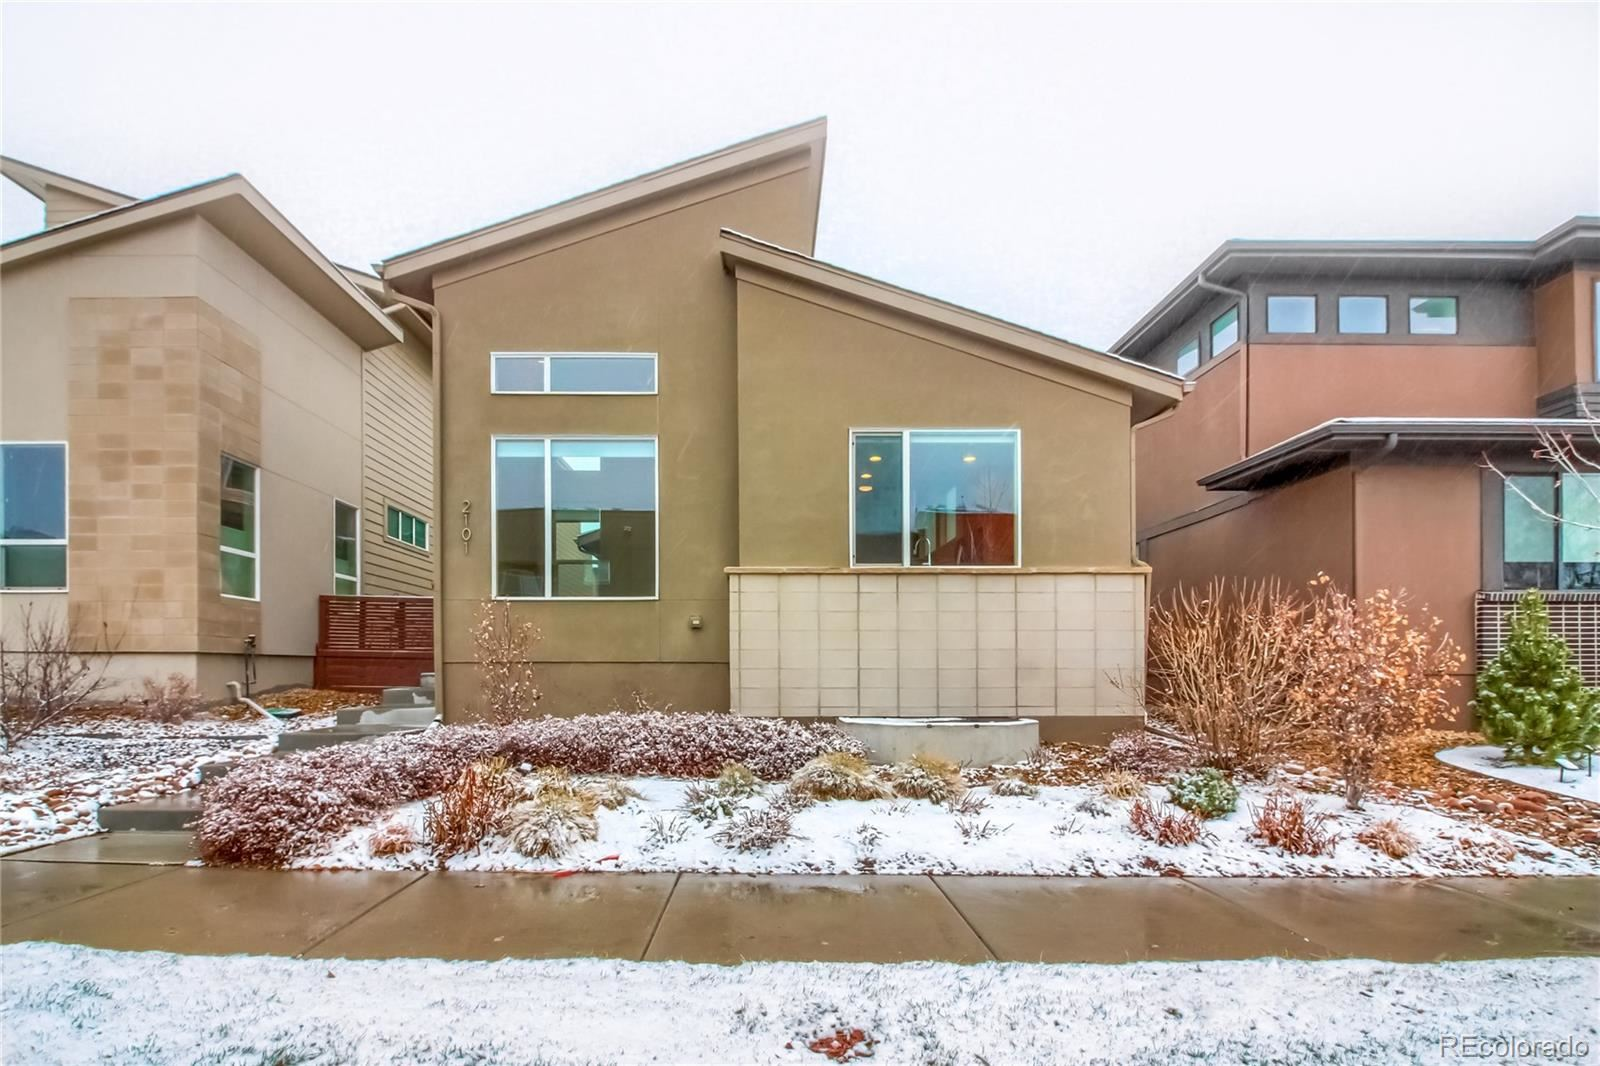 2101 W 67th Place, Denver, CO 80221 - #: 7239522